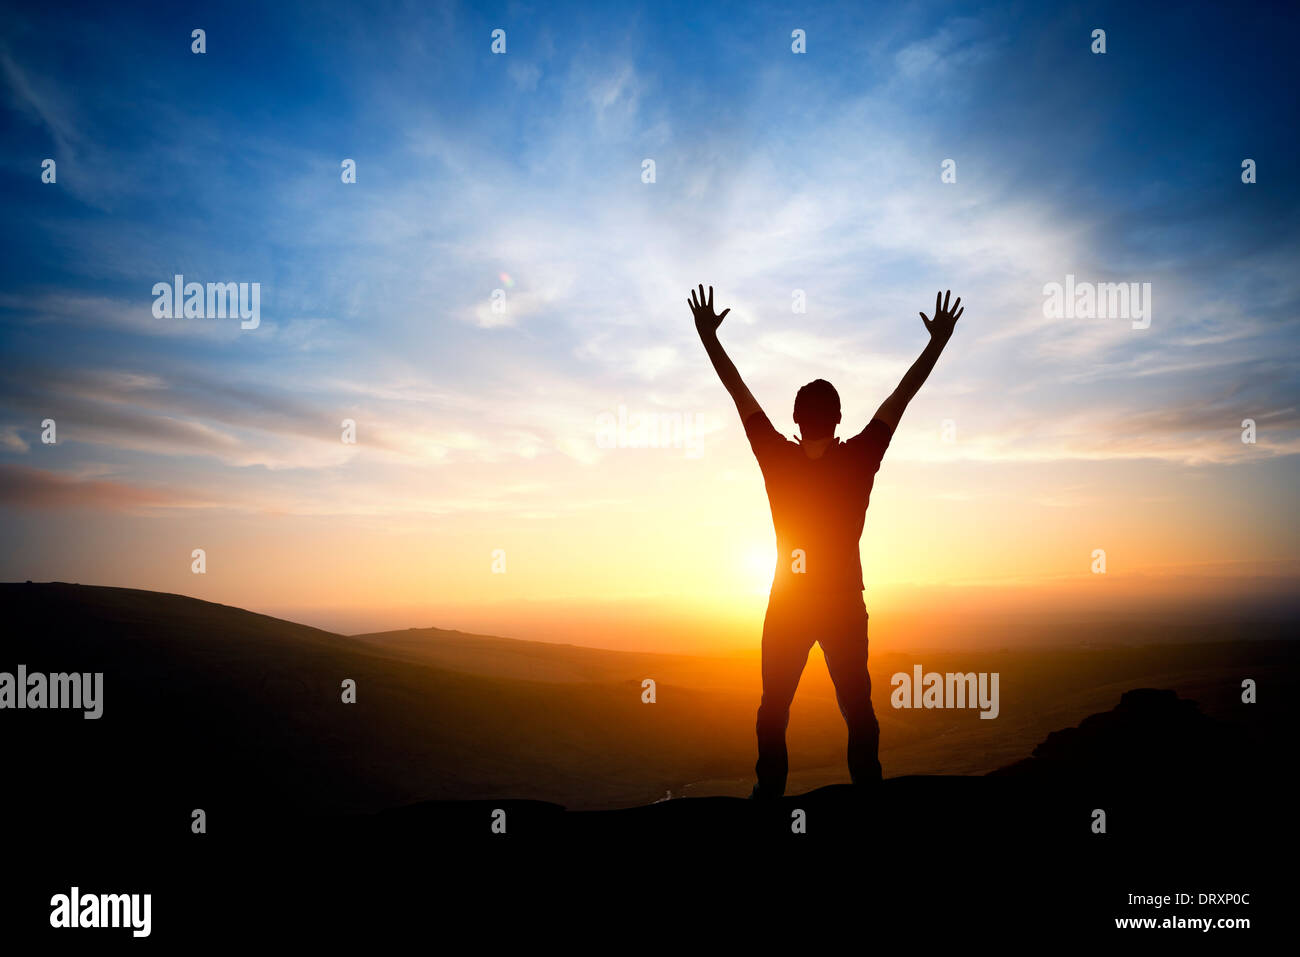 Fresh new morning a person reaching up on a bright for Morning sunrise images